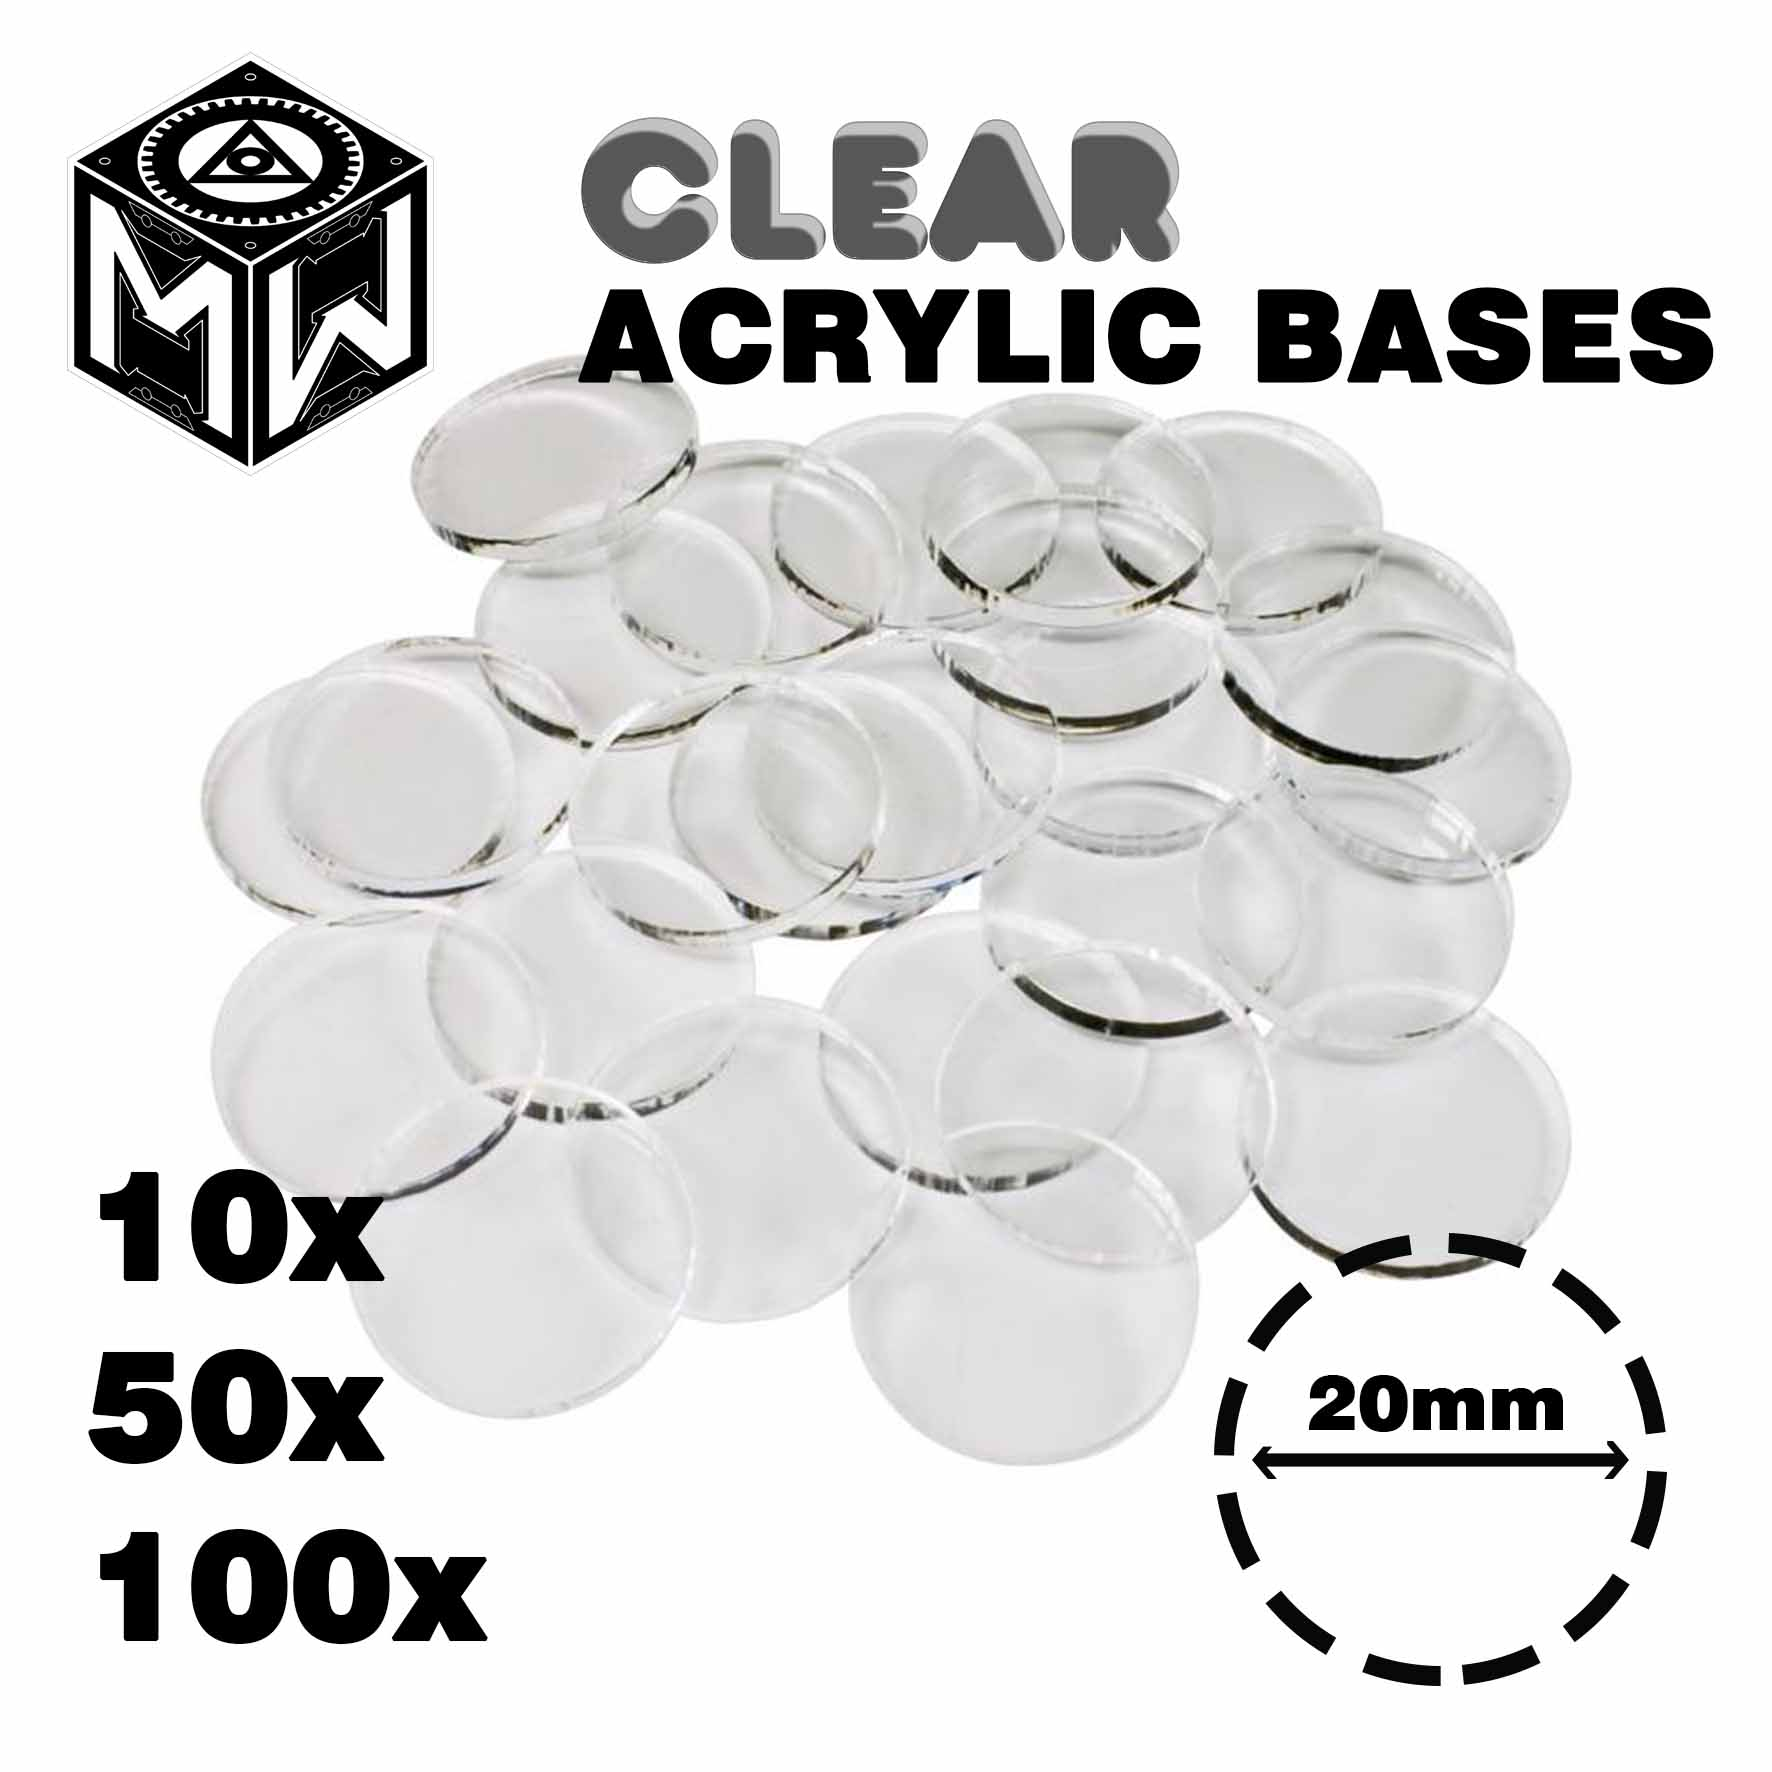 3mm Acrylic Clear Bases, Round 20mm